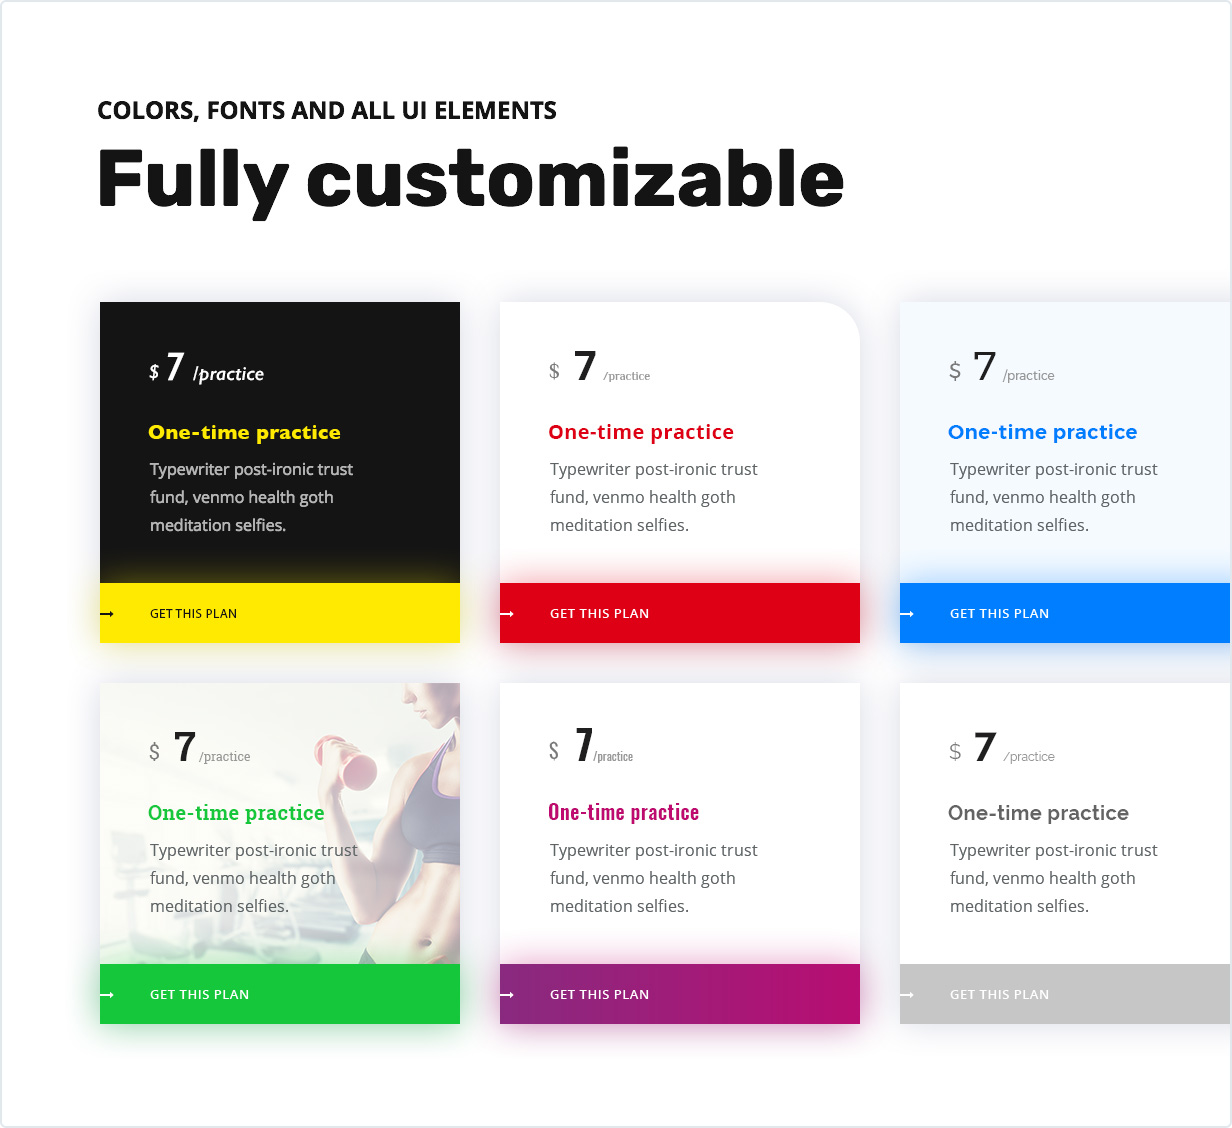 Fully Customizable Layout, Colors, Fonts and All UI Elements